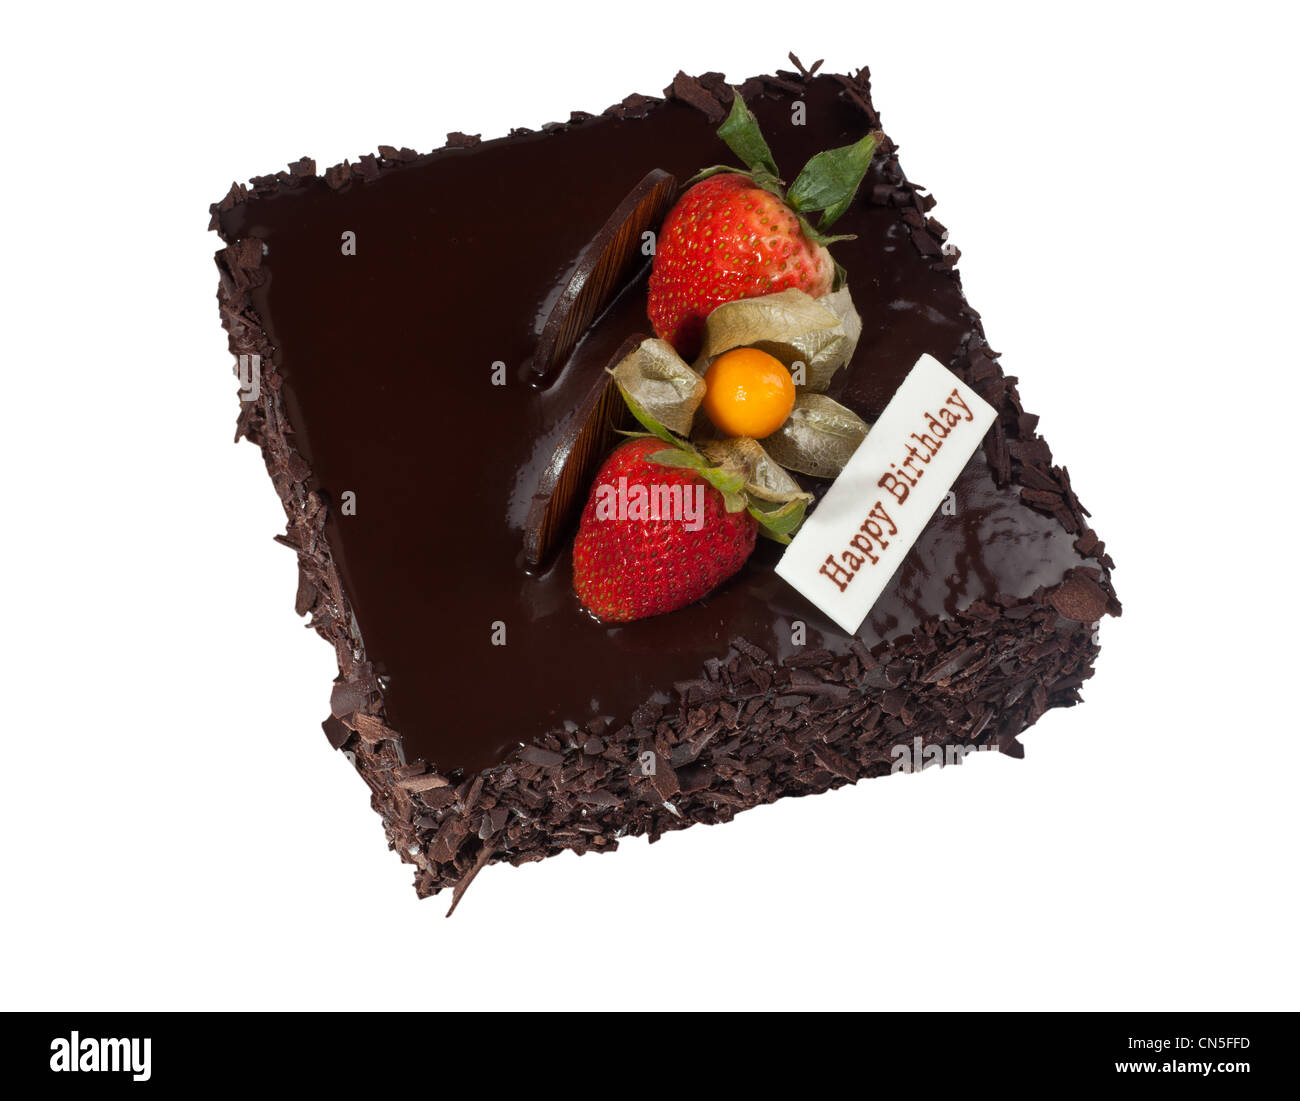 Chocolate Birthday Cake With Strawberry Topping Isolated On White Background